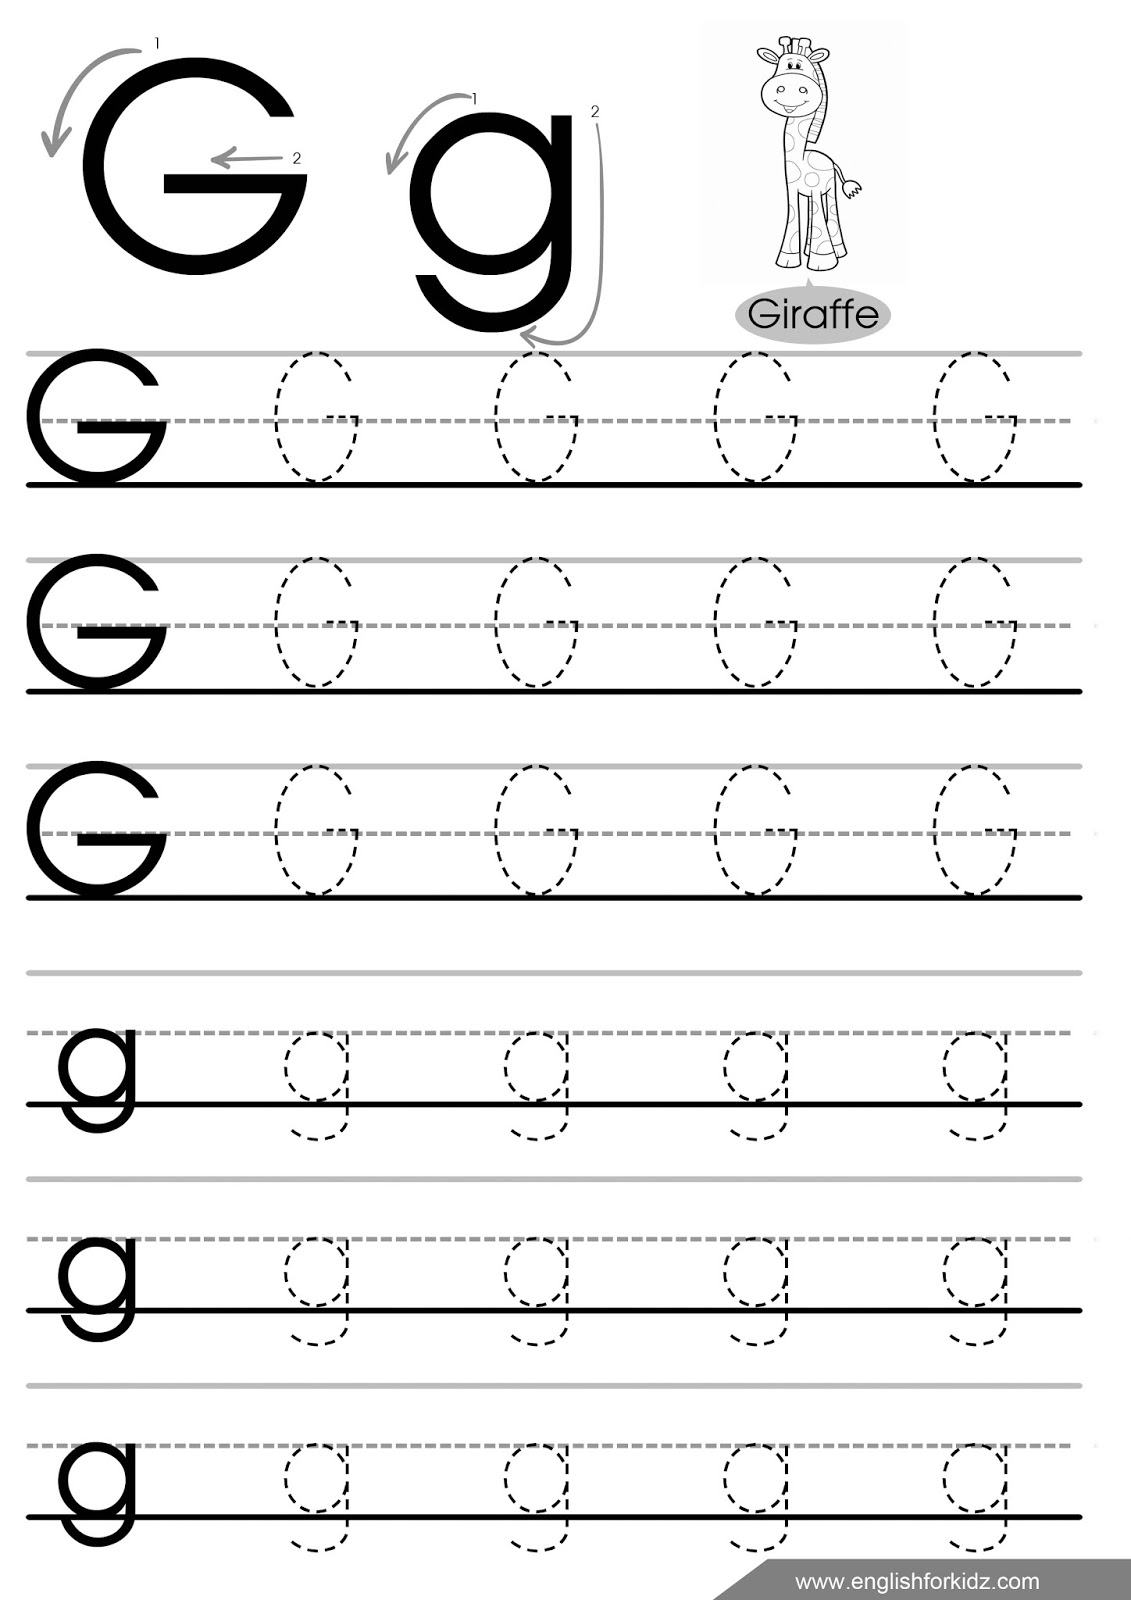 Preschool Letter G Tracing Worksheet. Preschool. Best Free